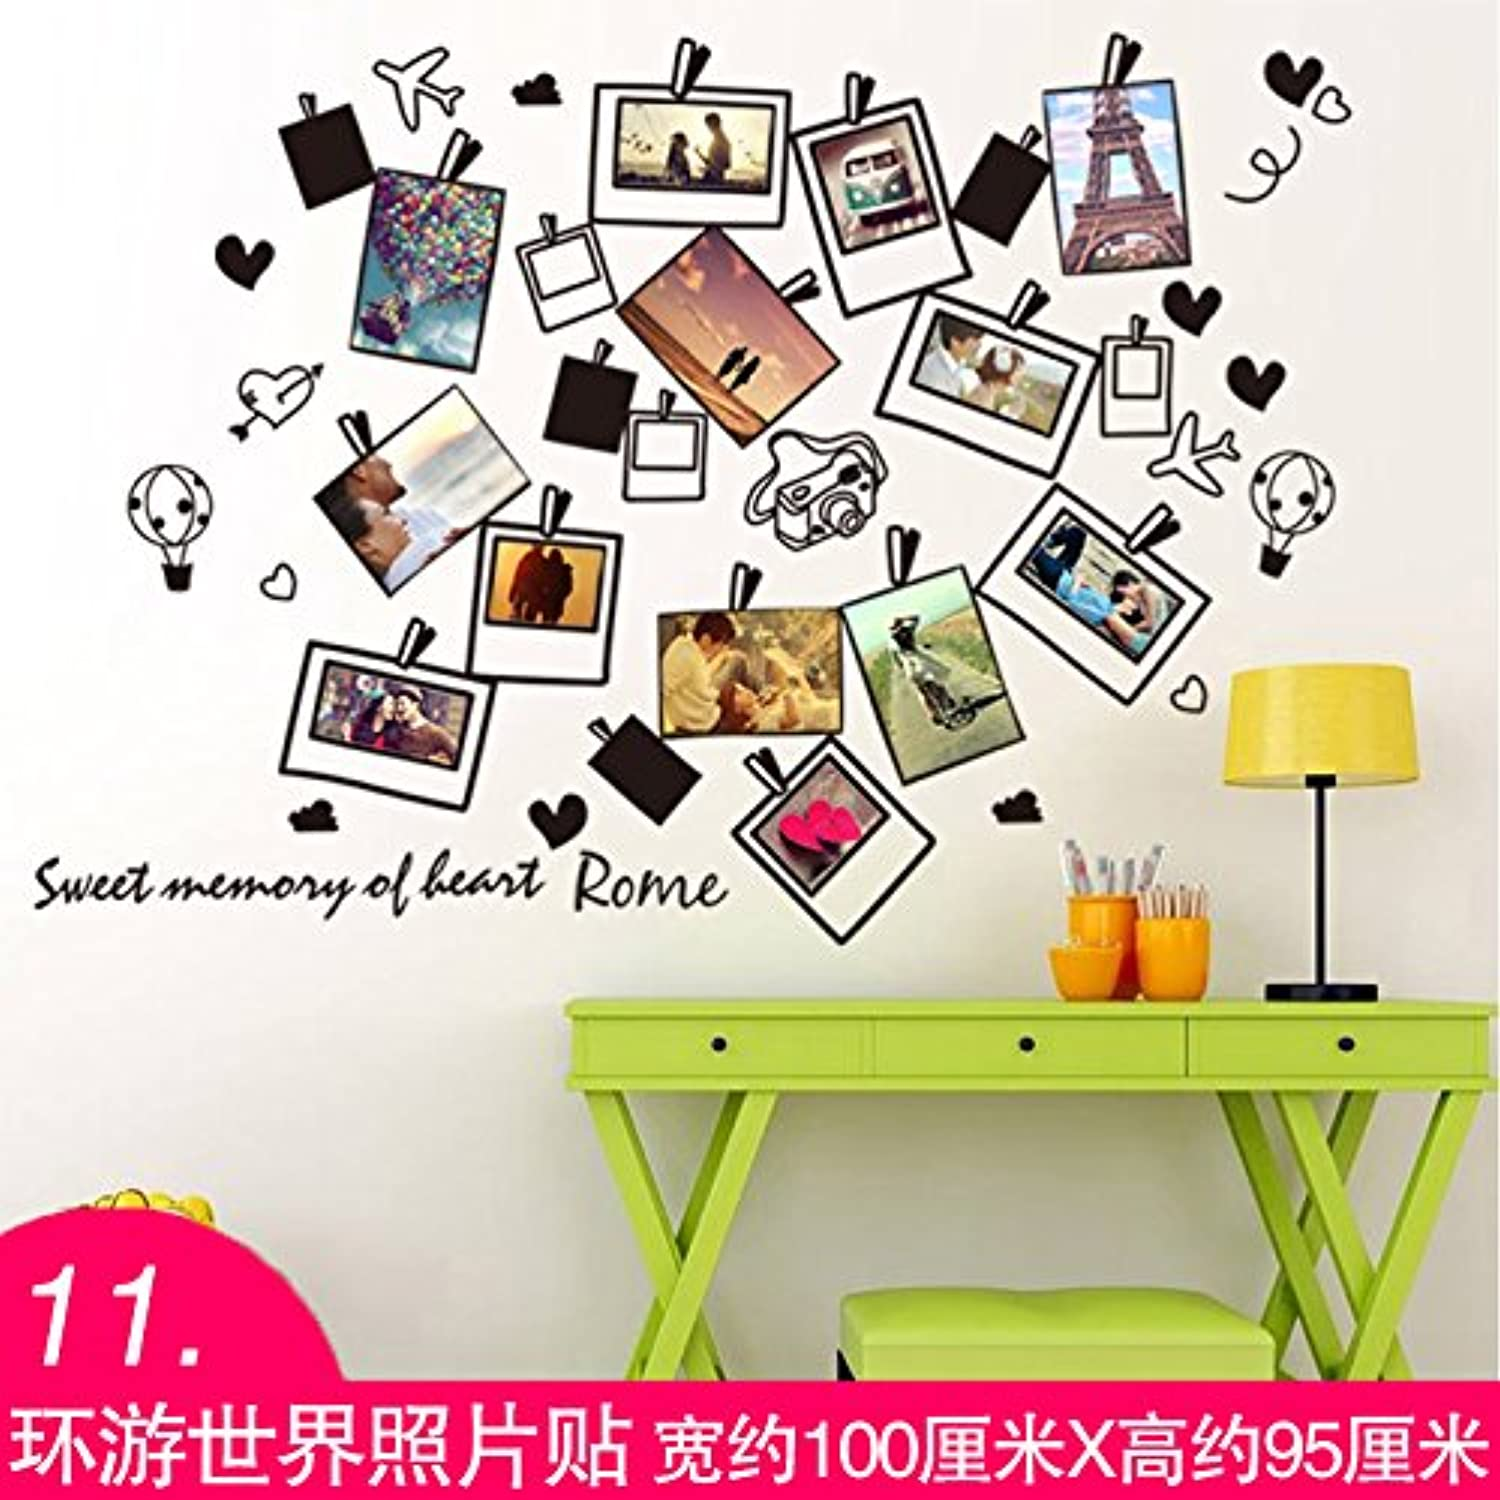 Znzbzt Wall Sticker self-Adhesive Wallpaper Wallpaper Decoration Creative Wall Stickers, 11. Travel Around The World Photo Stickers, Extra Large